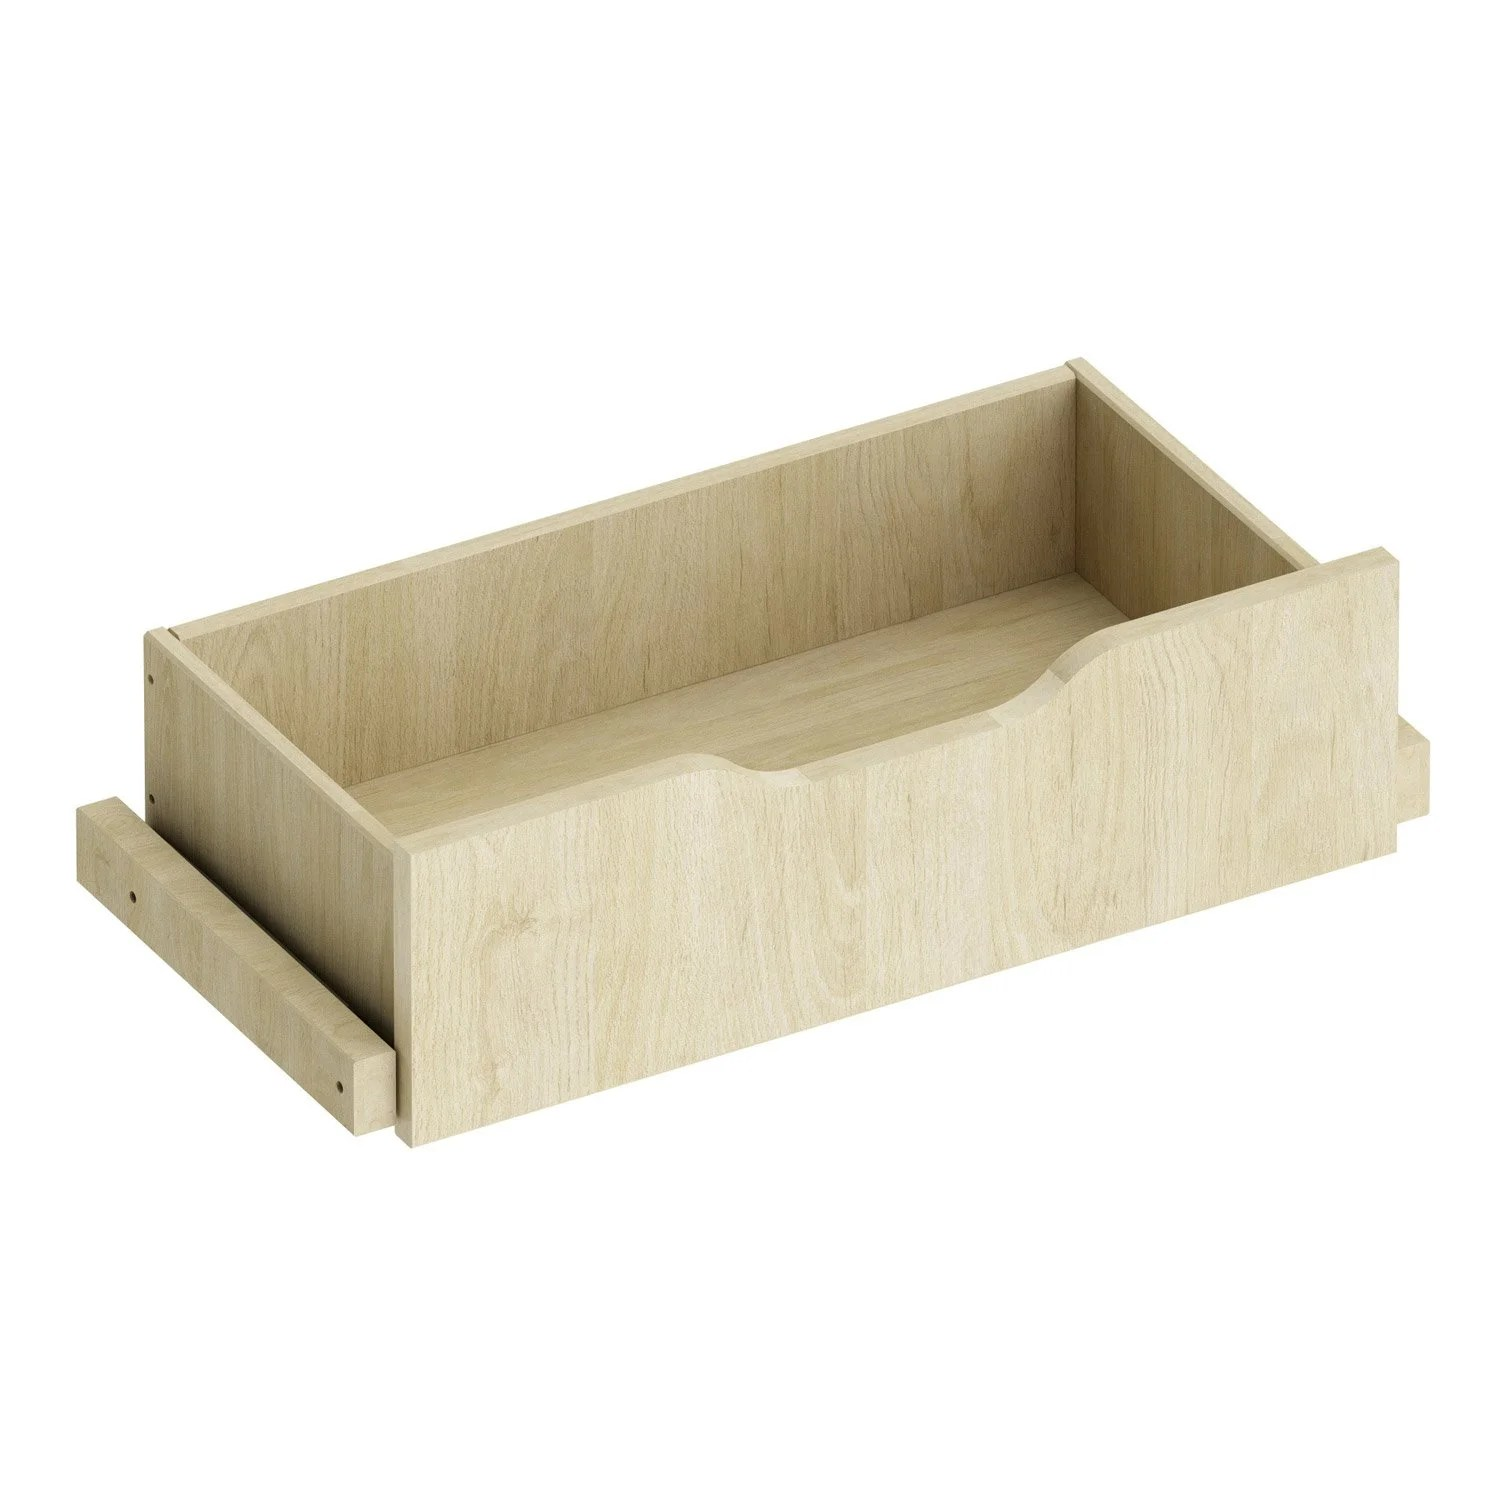 Couchtisch Lifto Kiefer Tiroir Spaceo